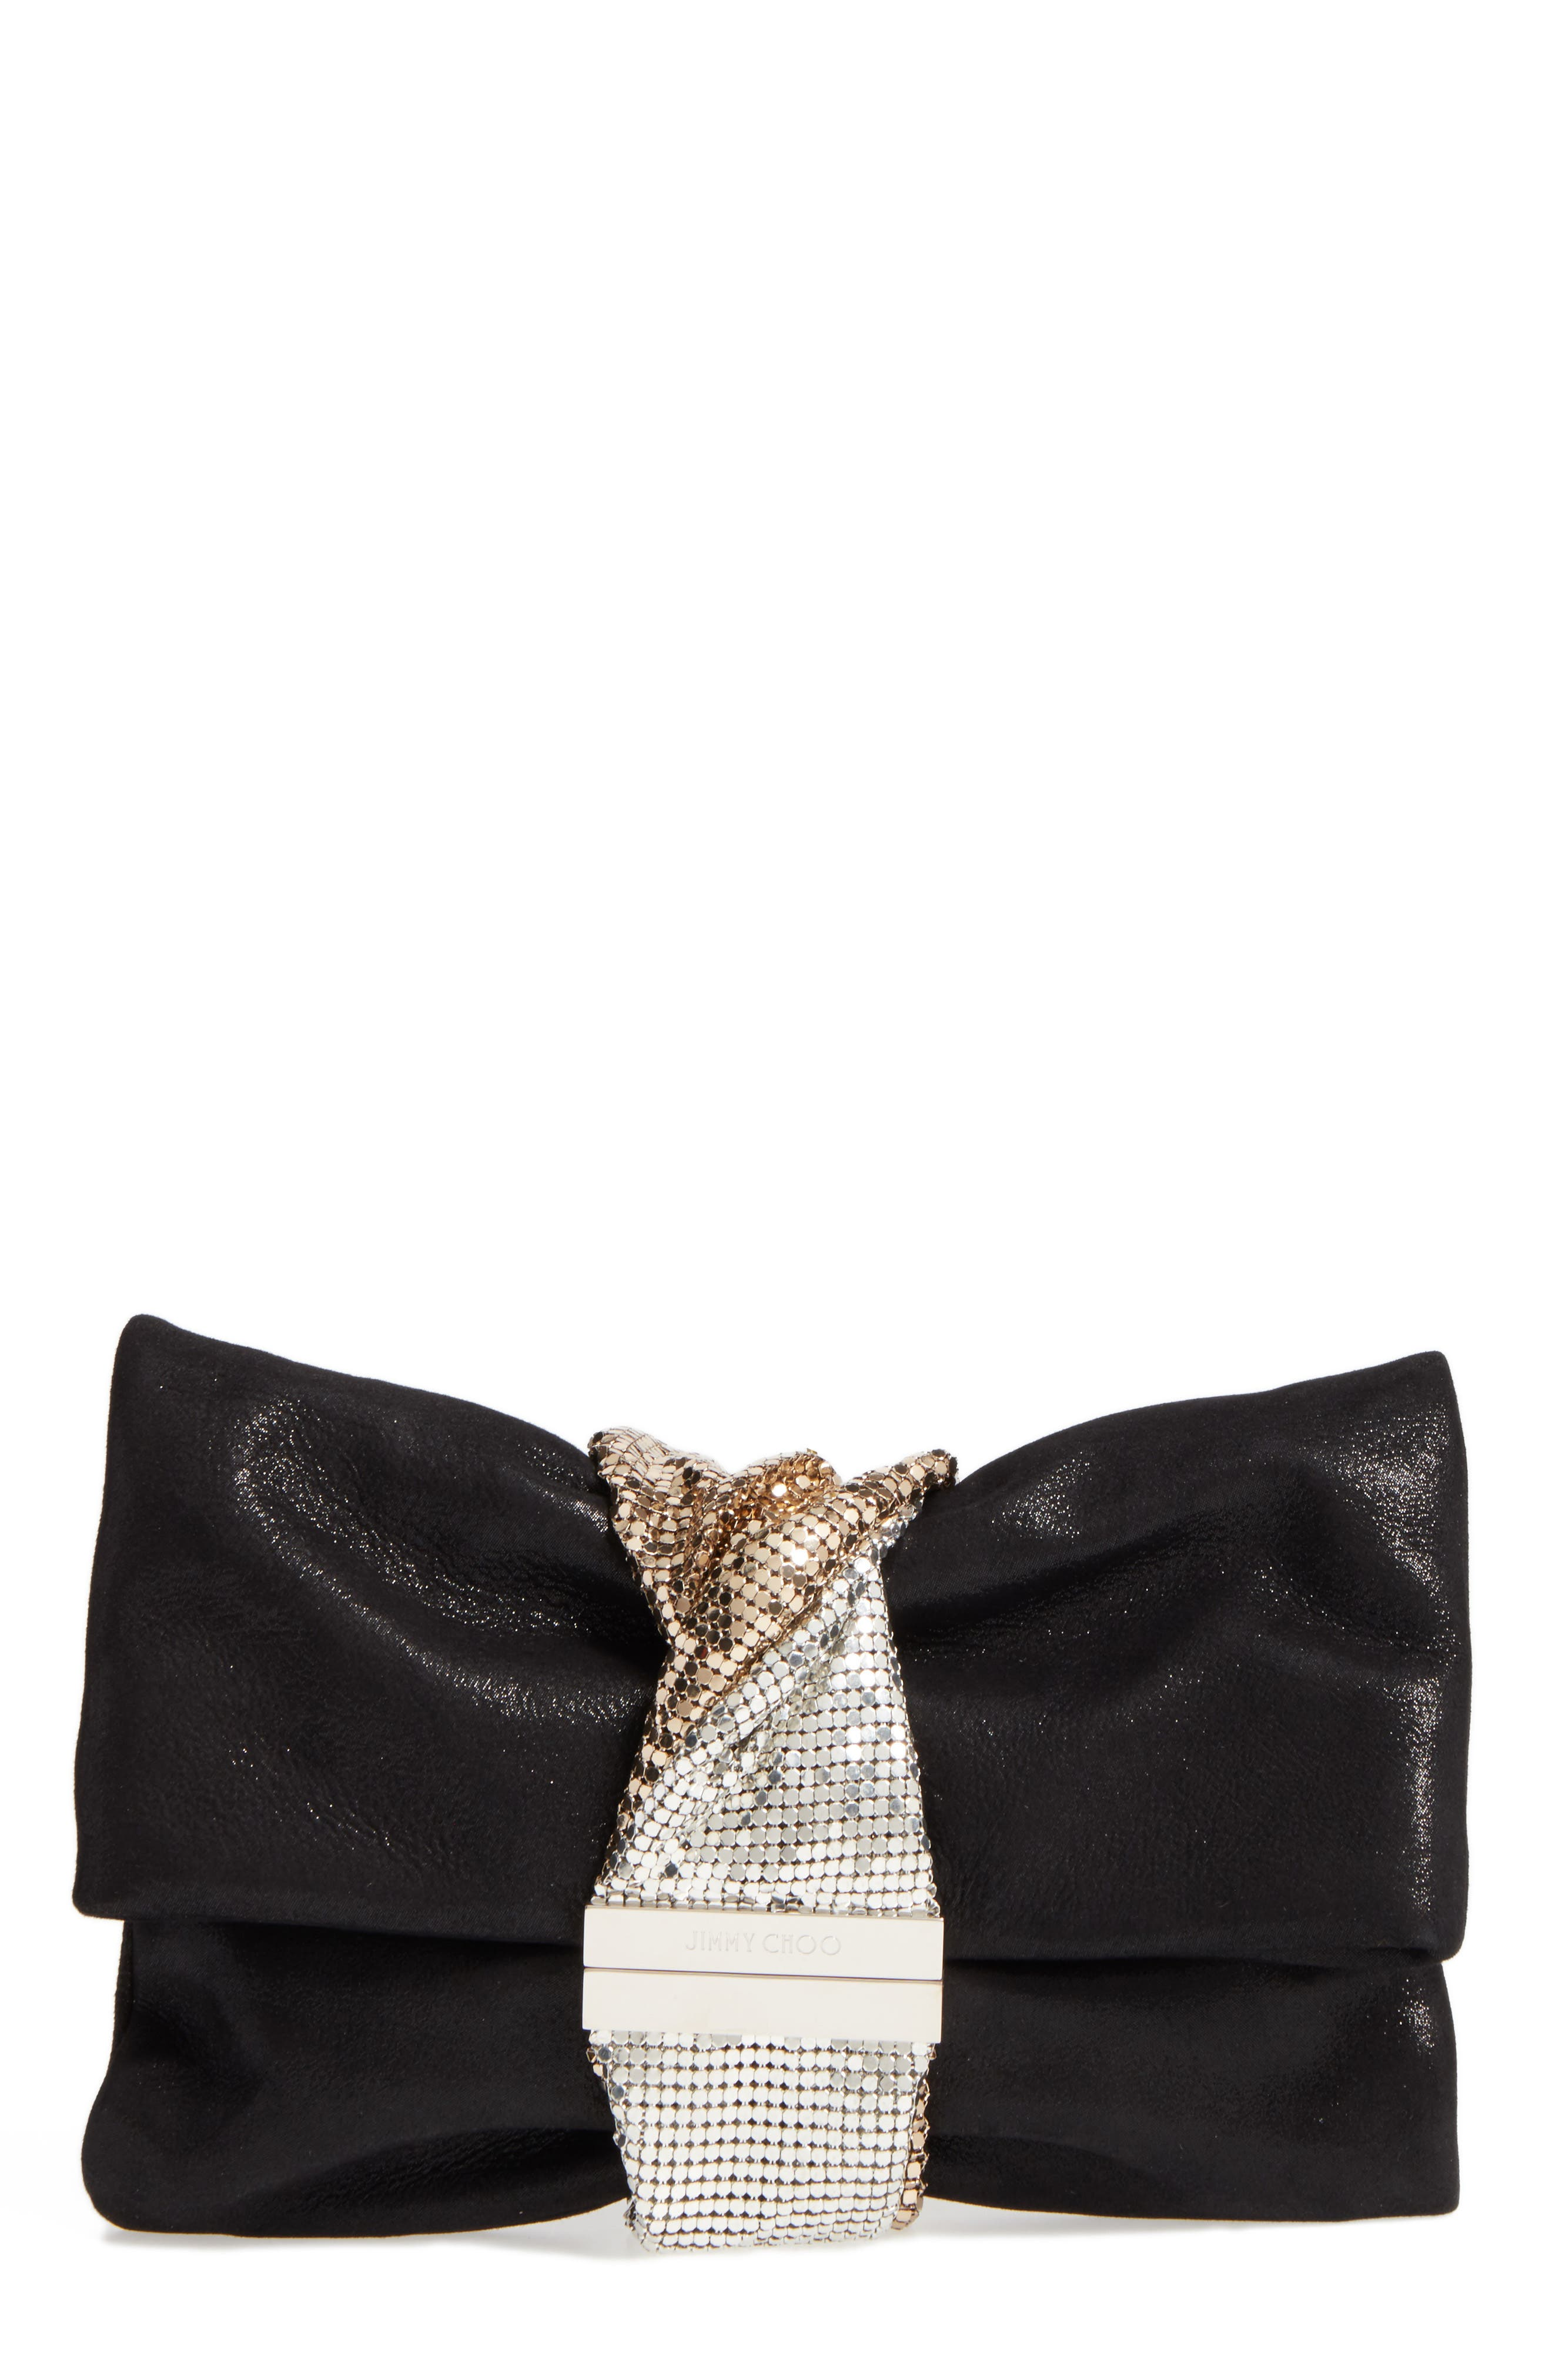 Main Image - Jimmy Choo Chandra Shimmer Suede Clutch